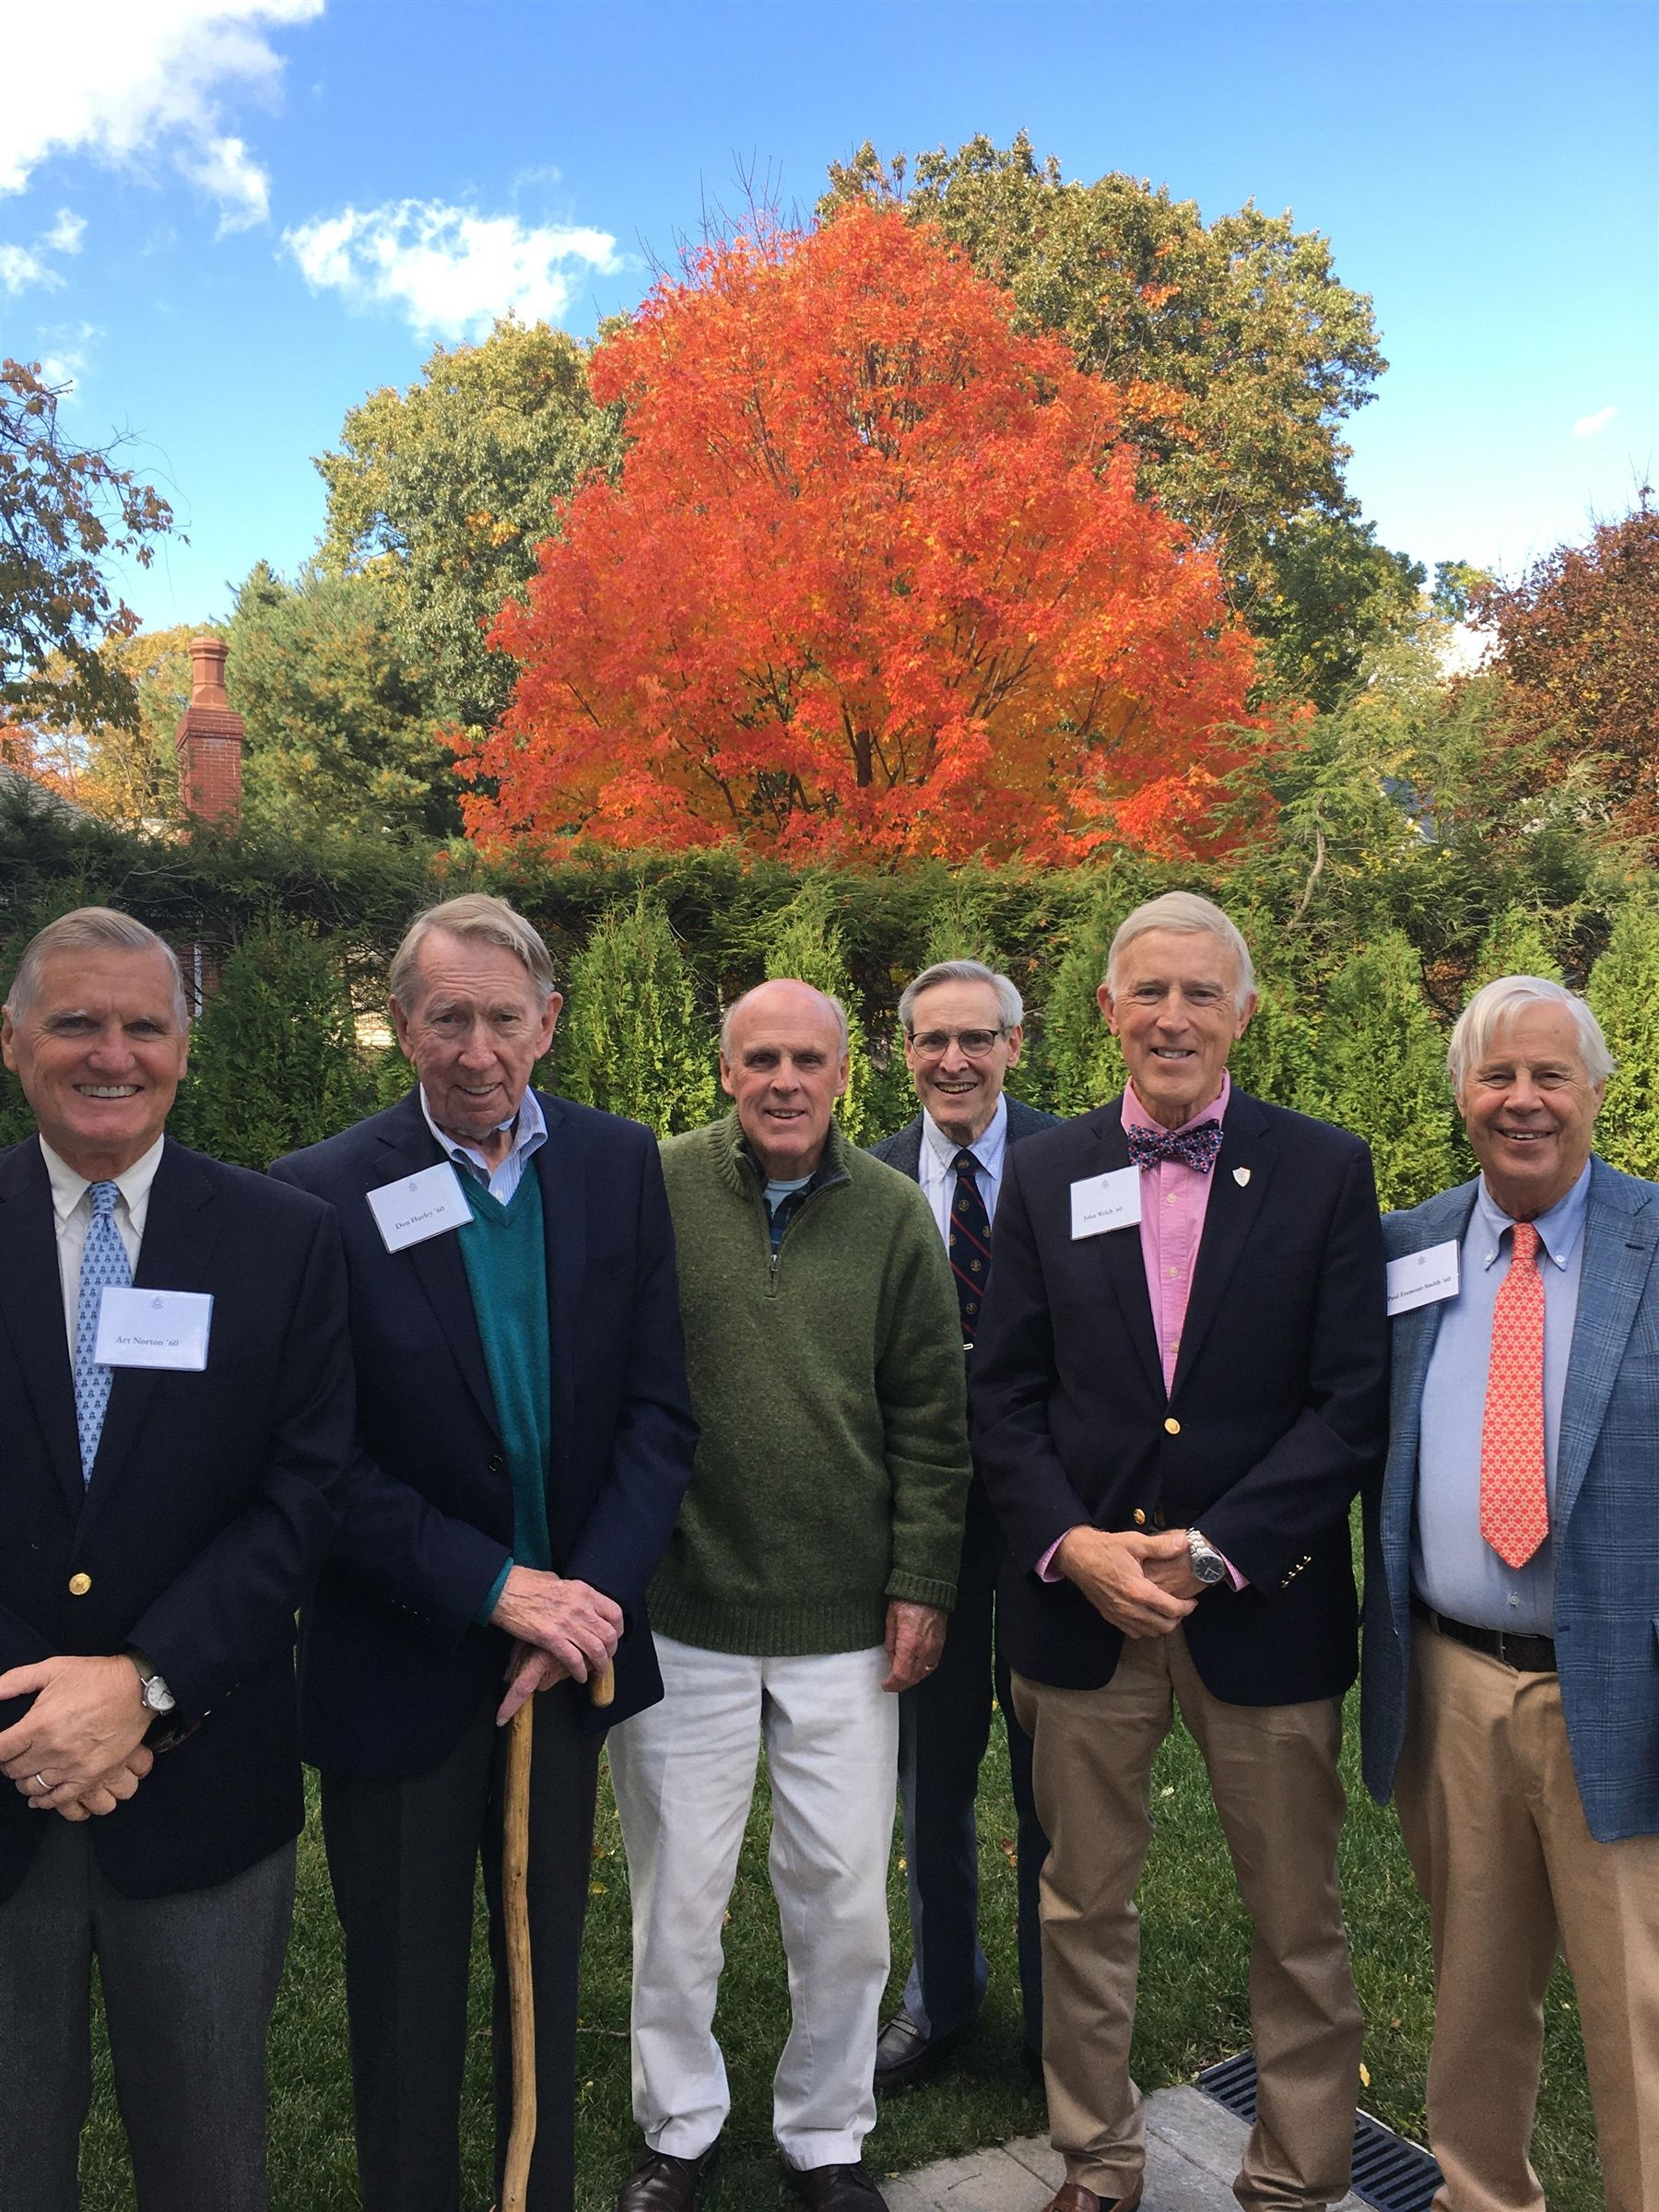 Class of 1960 Reunion Planning Lunch at Alumni House in October 2019.